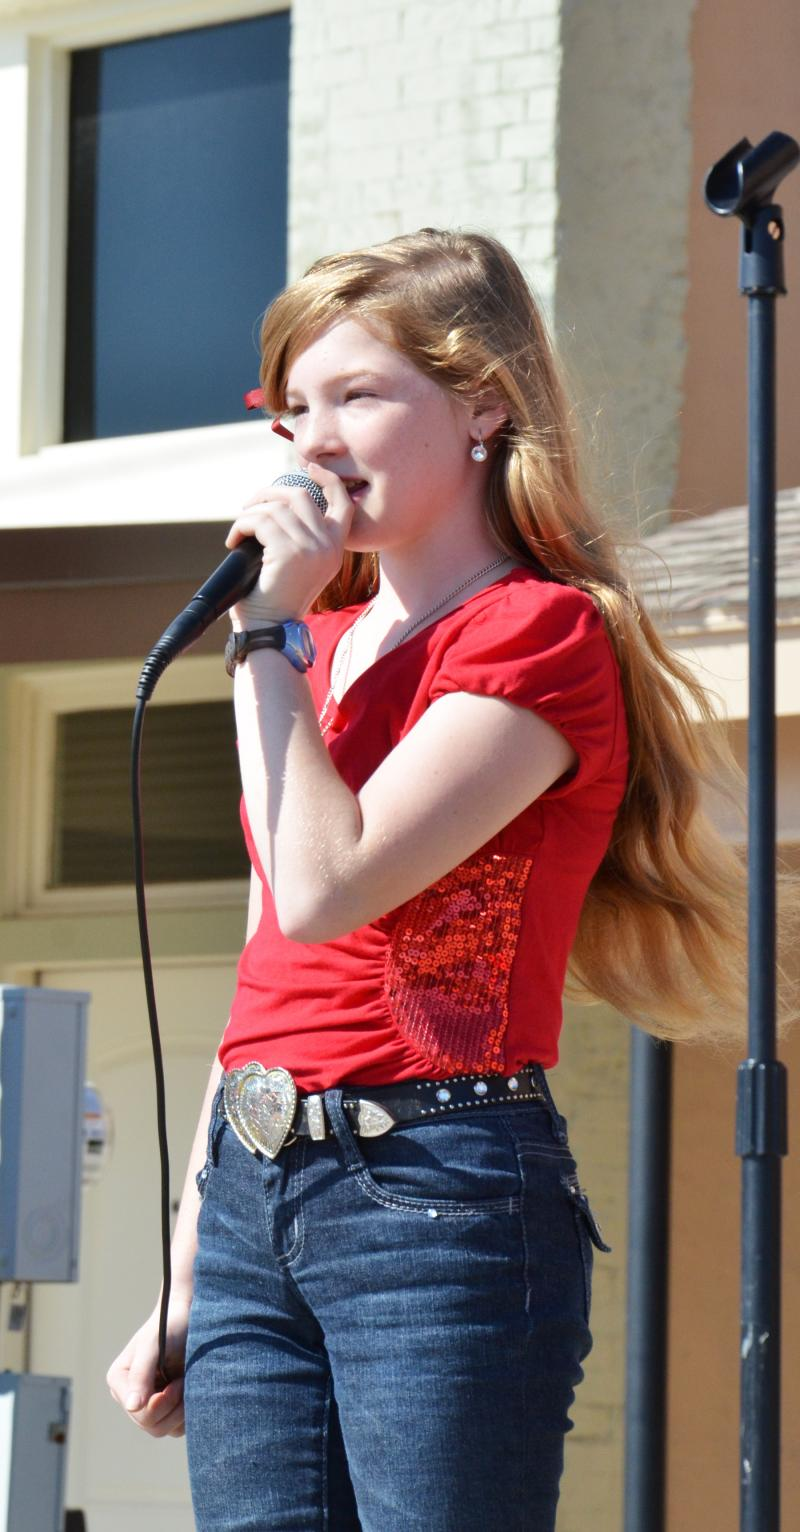 Hannah, 12-year old singer of Two Hearts Plus performs at Chiggerfest